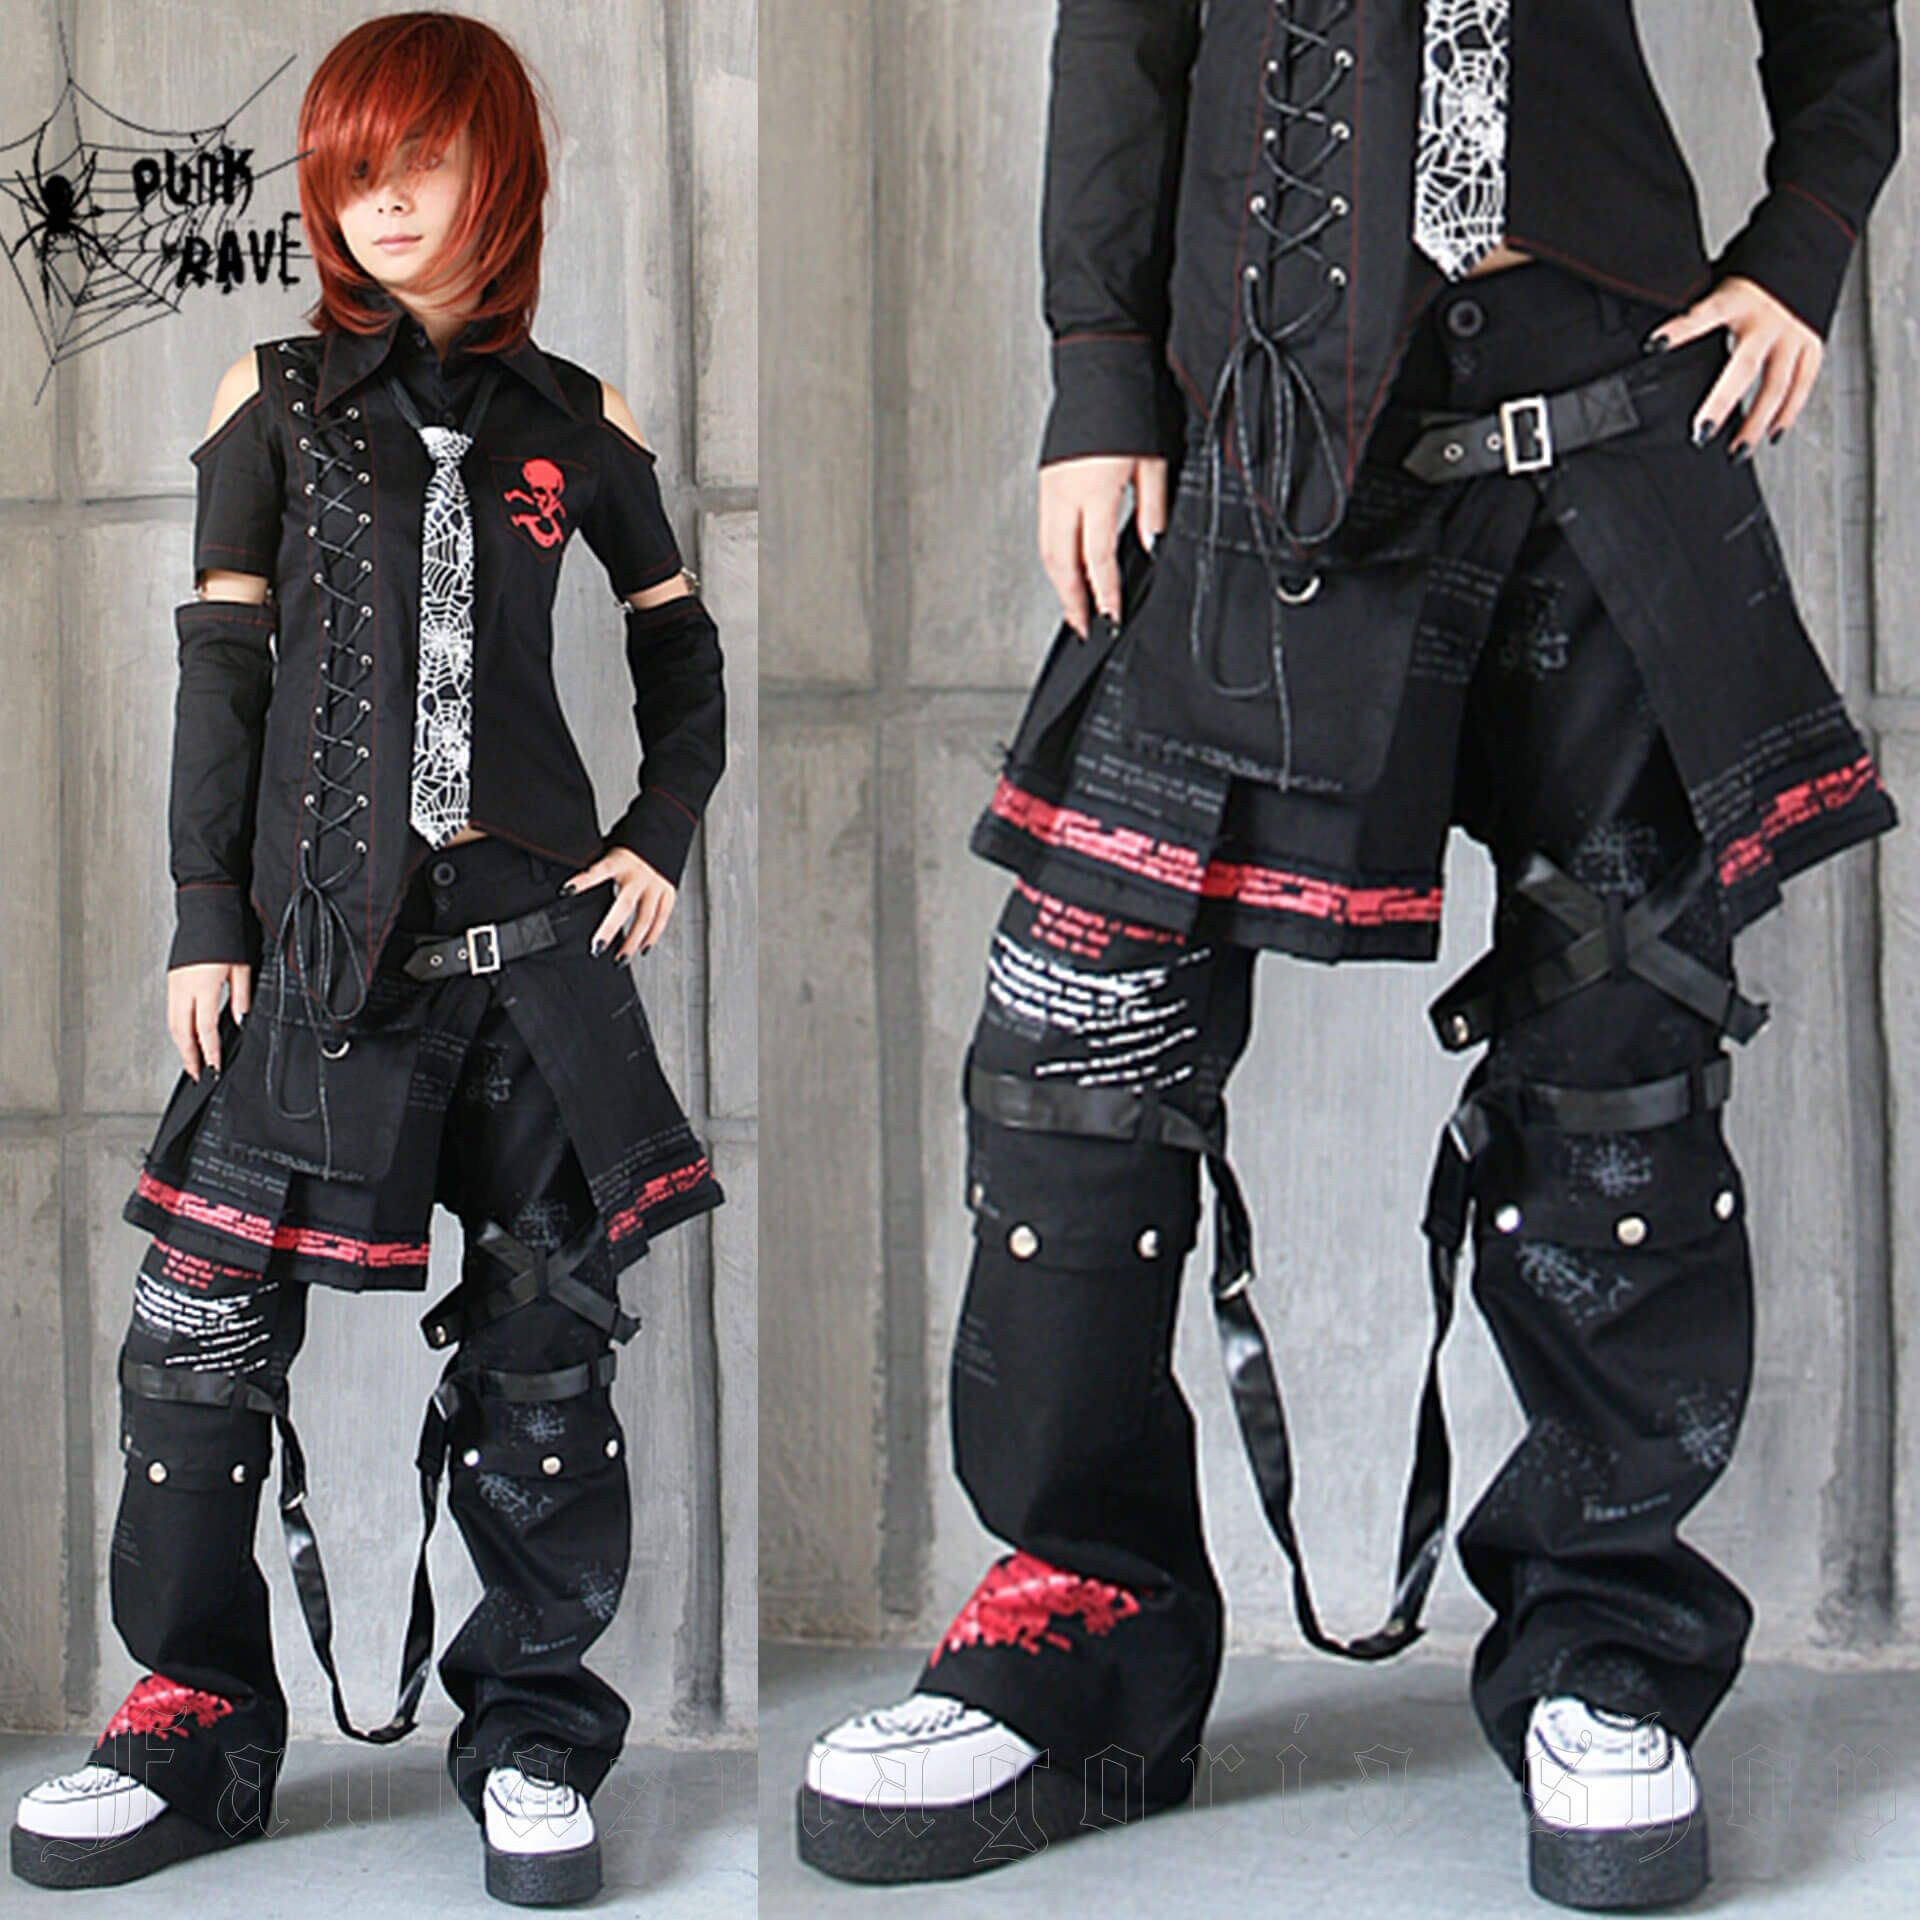 women's Chaos Girl Trousers And Skirt Set by PUNK RAVE brand, code: K-053